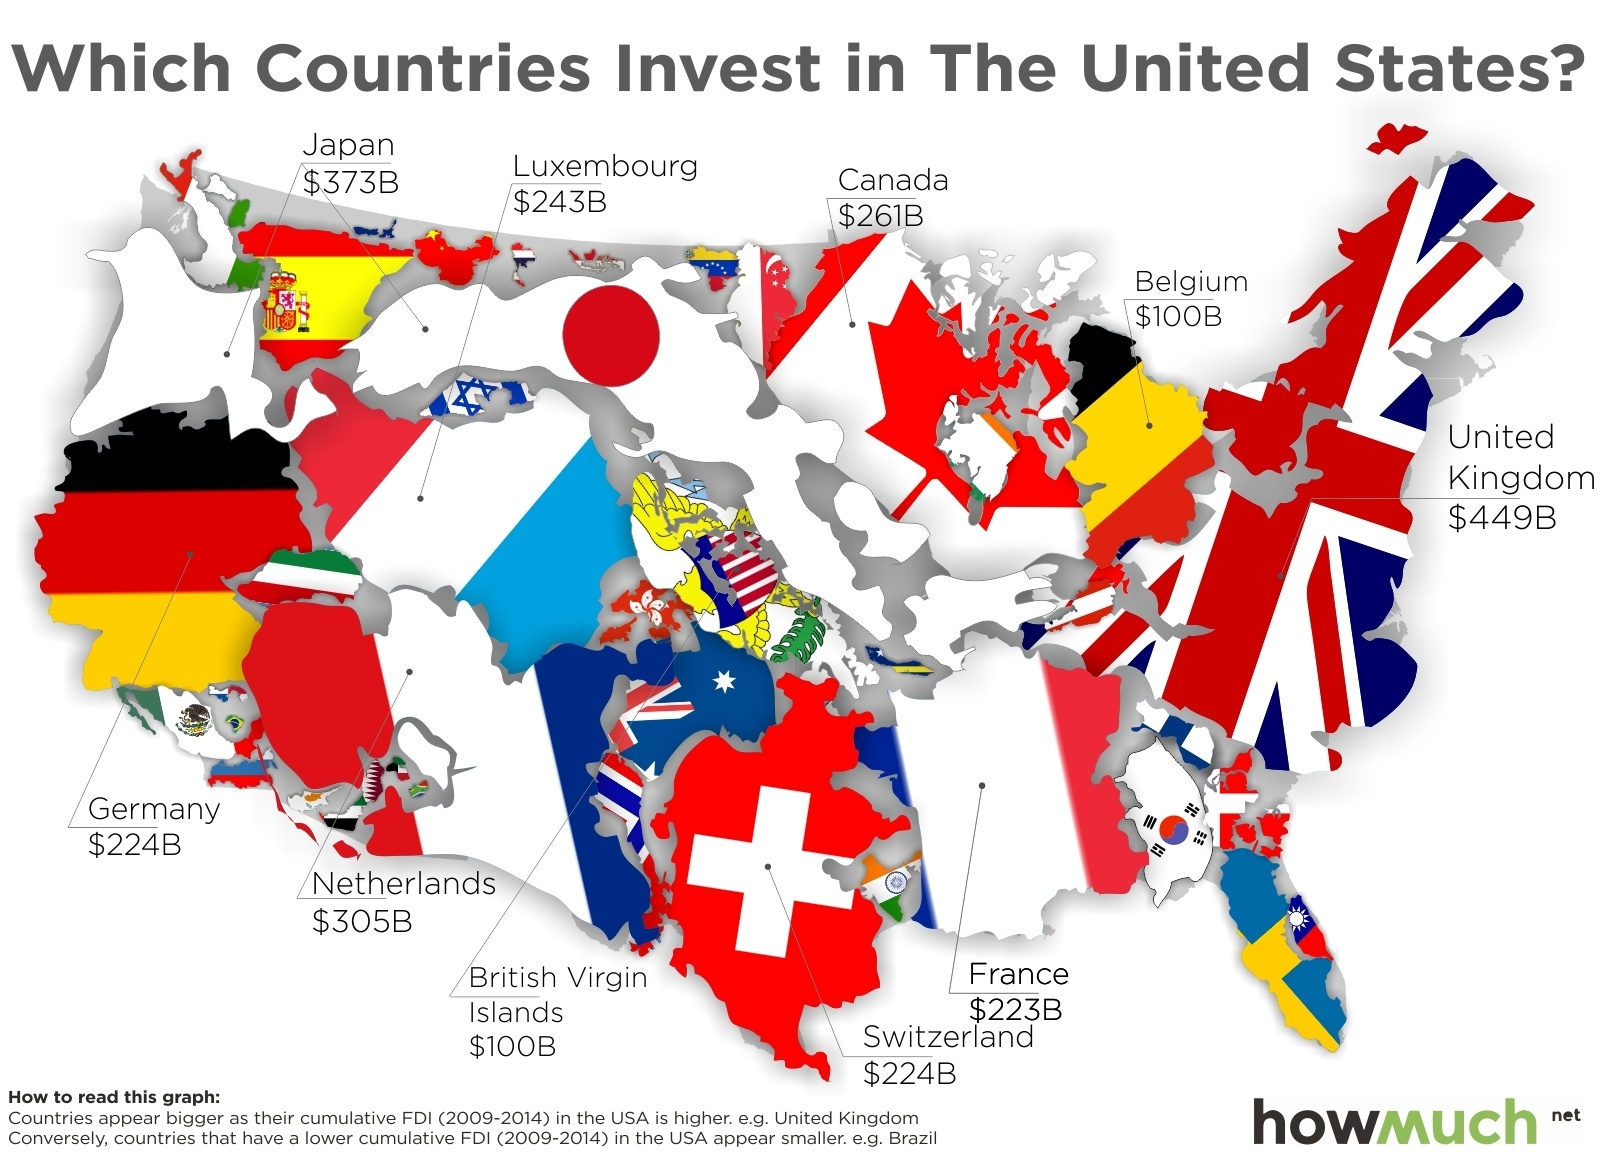 The Map Below Ilrates The Top Ten Countries Which Have Contributed To Foreign Direct Investment In The United States Fdius On A Cumulative Basis As Of